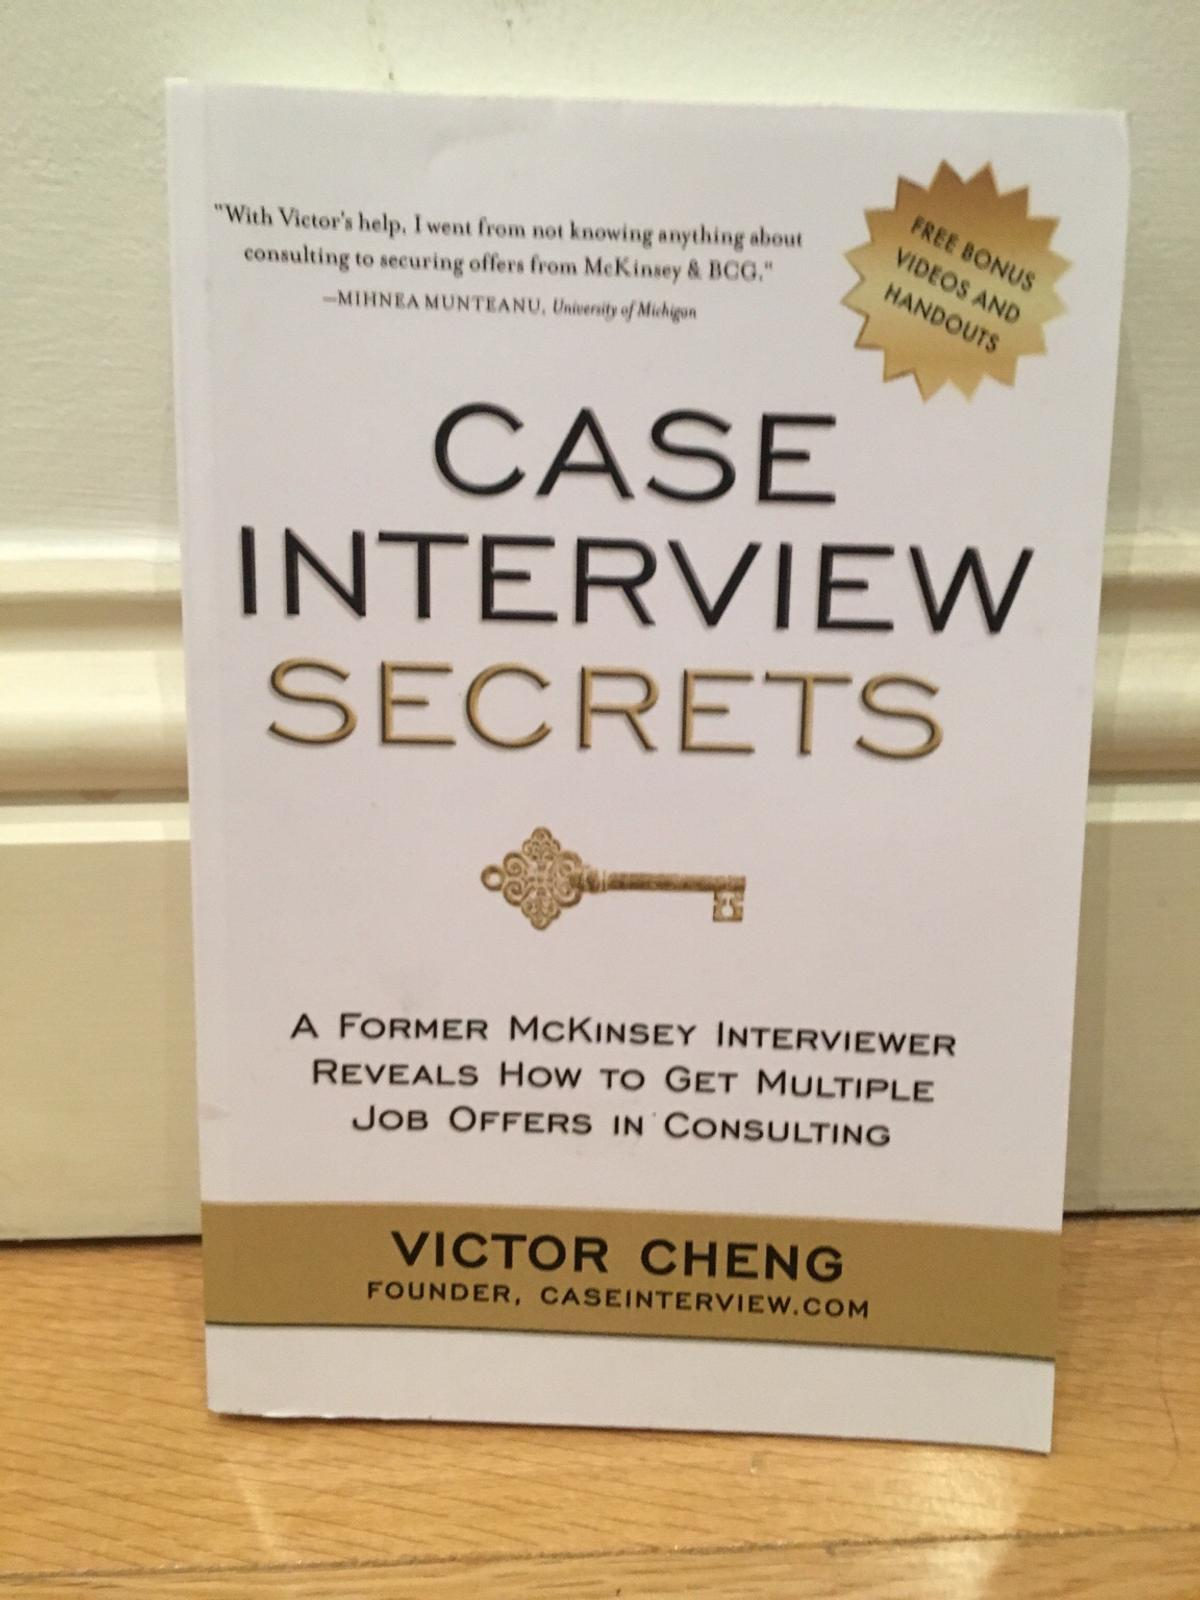 Case Interview Secrets by Victor Cheng